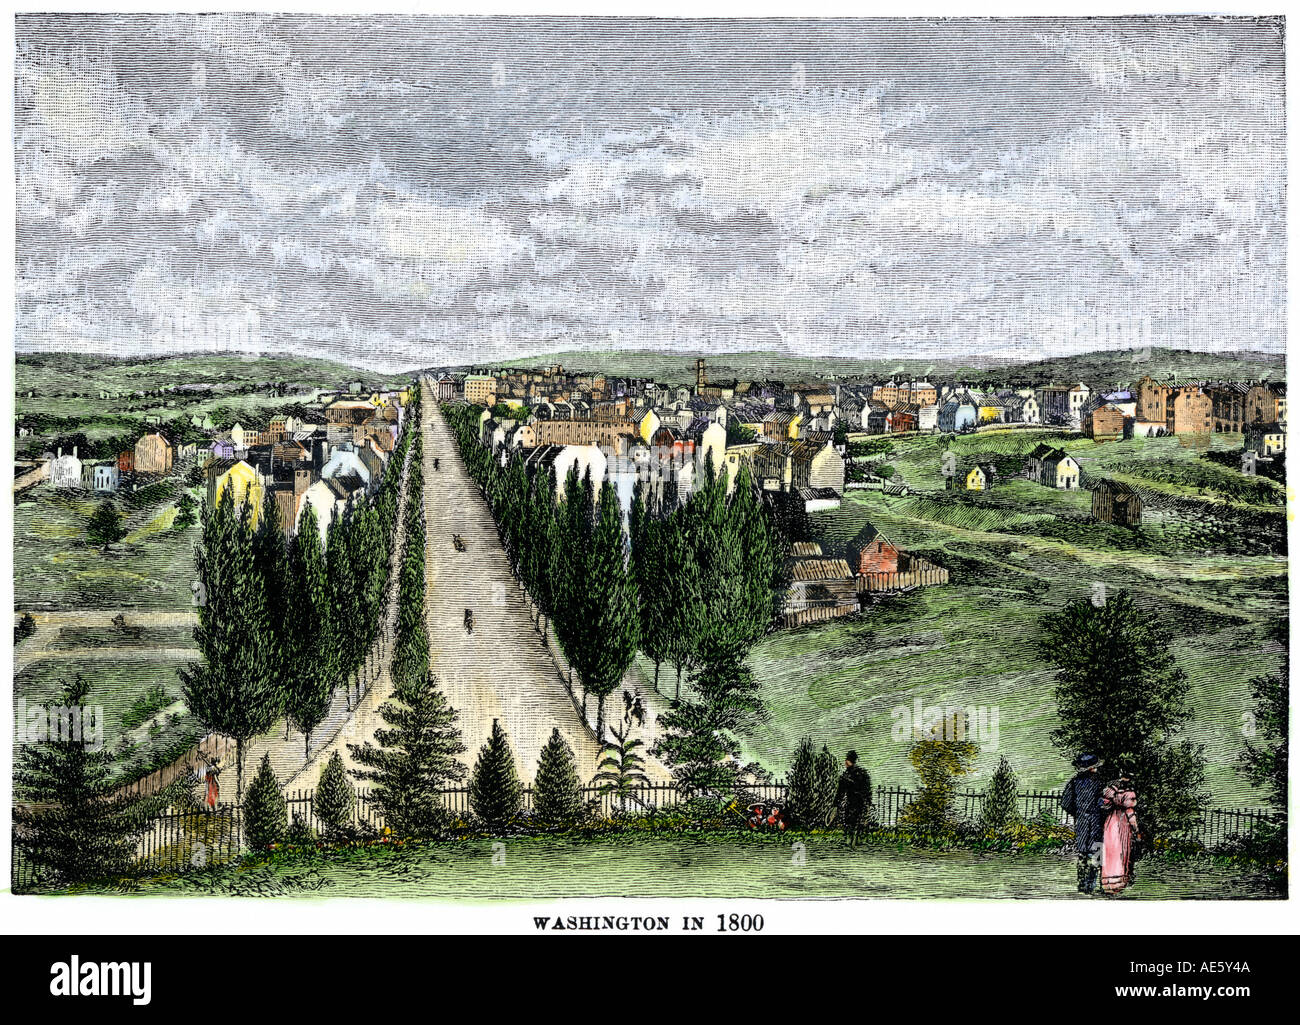 Washington DC in 1800 looking down Pennsylvania Avenue from the Capitol grounds. Hand-colored woodcut - Stock Image